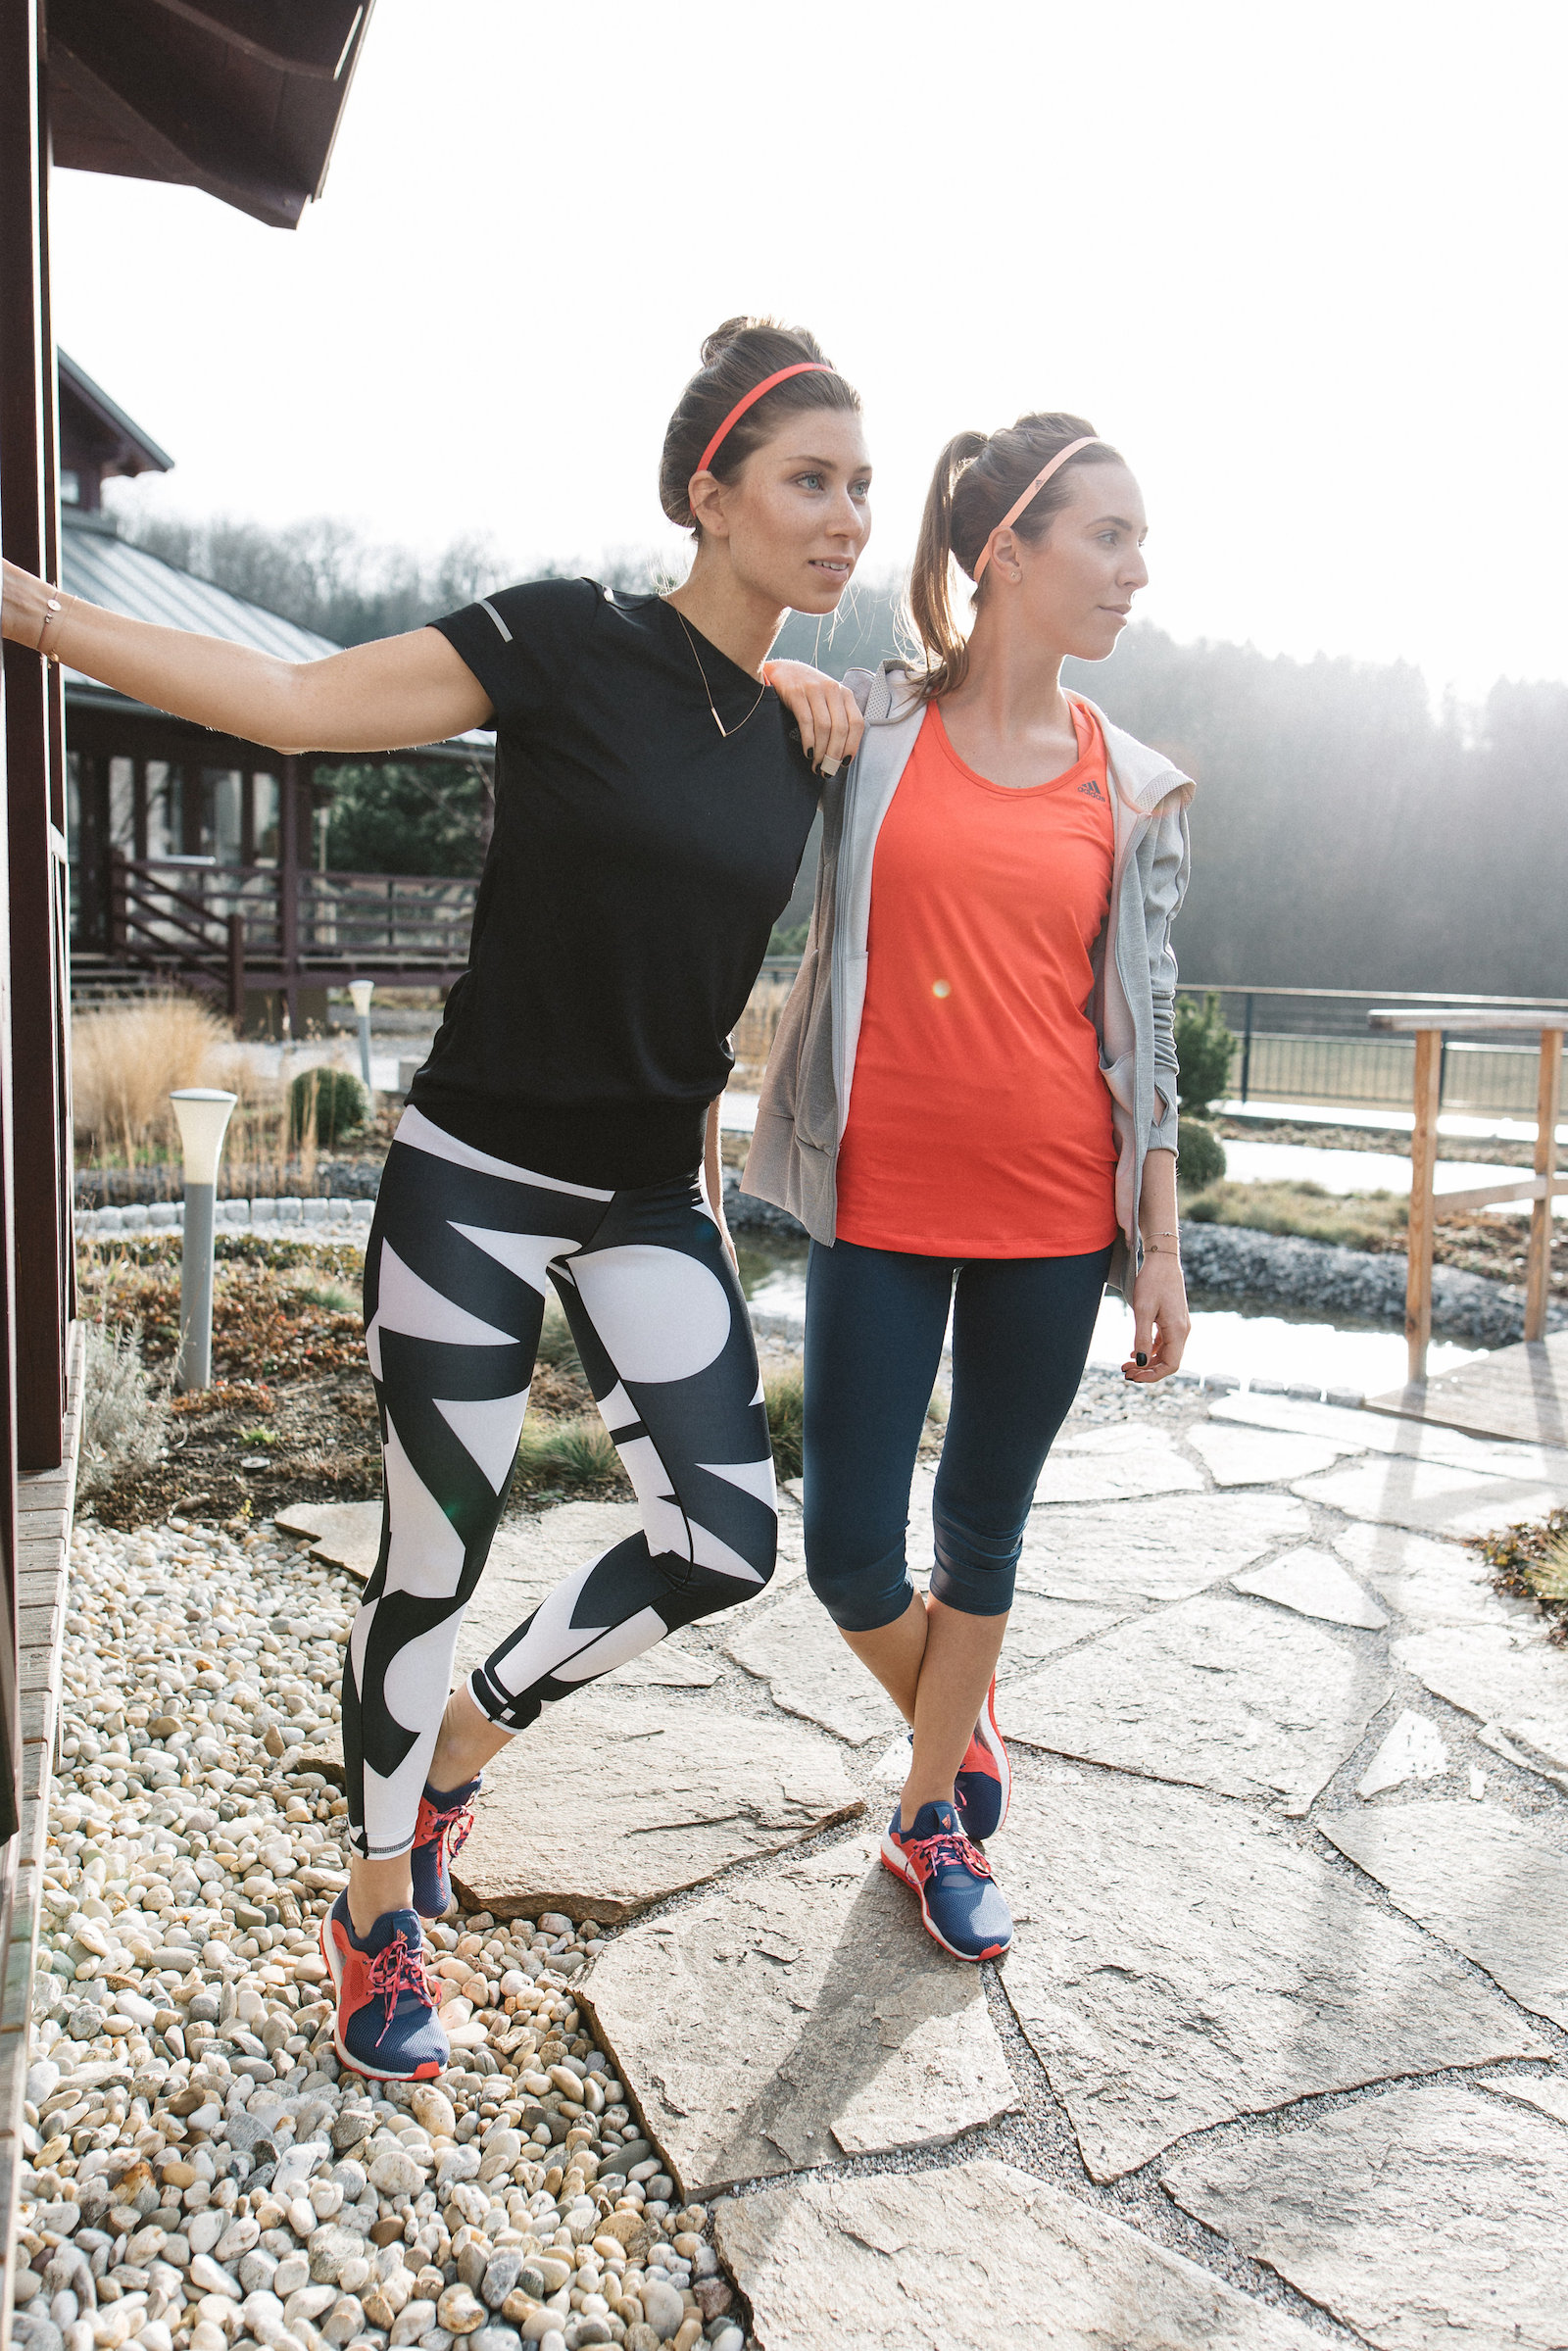 Let's Sweat: Adidas Pure Boost X Women's Running Shoe | Love Daily Dose